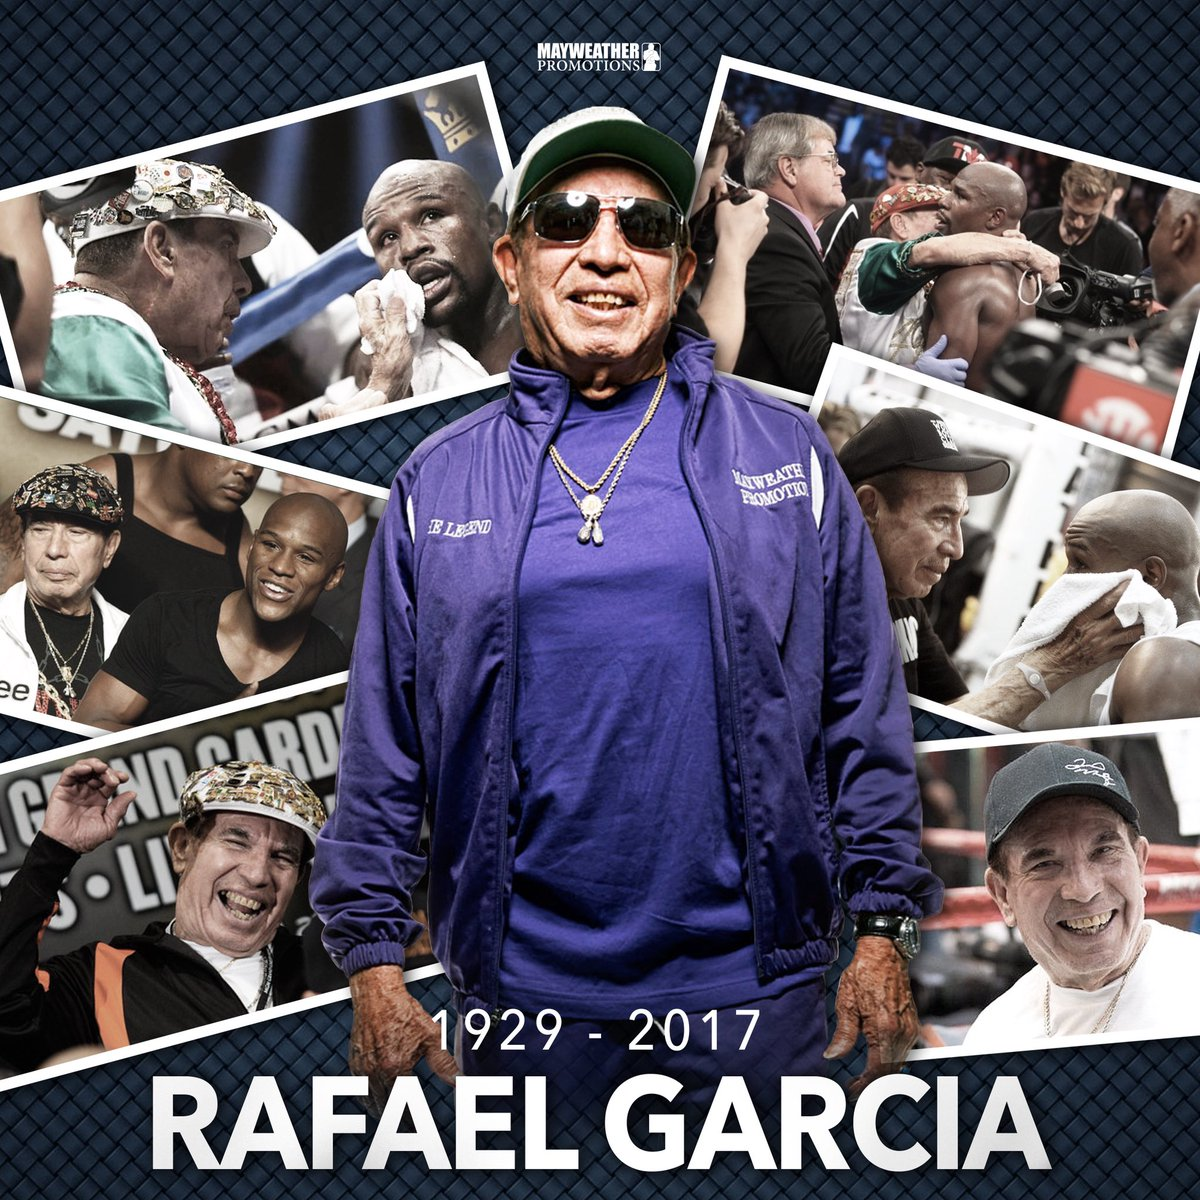 test Twitter Media - Rafael Garcia you will be missed. You lived your life to the fullest,  and you will be remembered for all your contributions to the sport of boxing. Let your soul rest with no more pain. ~ Love always and forever your Mayweather Promotions family 🙏🏾 https://t.co/1LlbBbBwwb